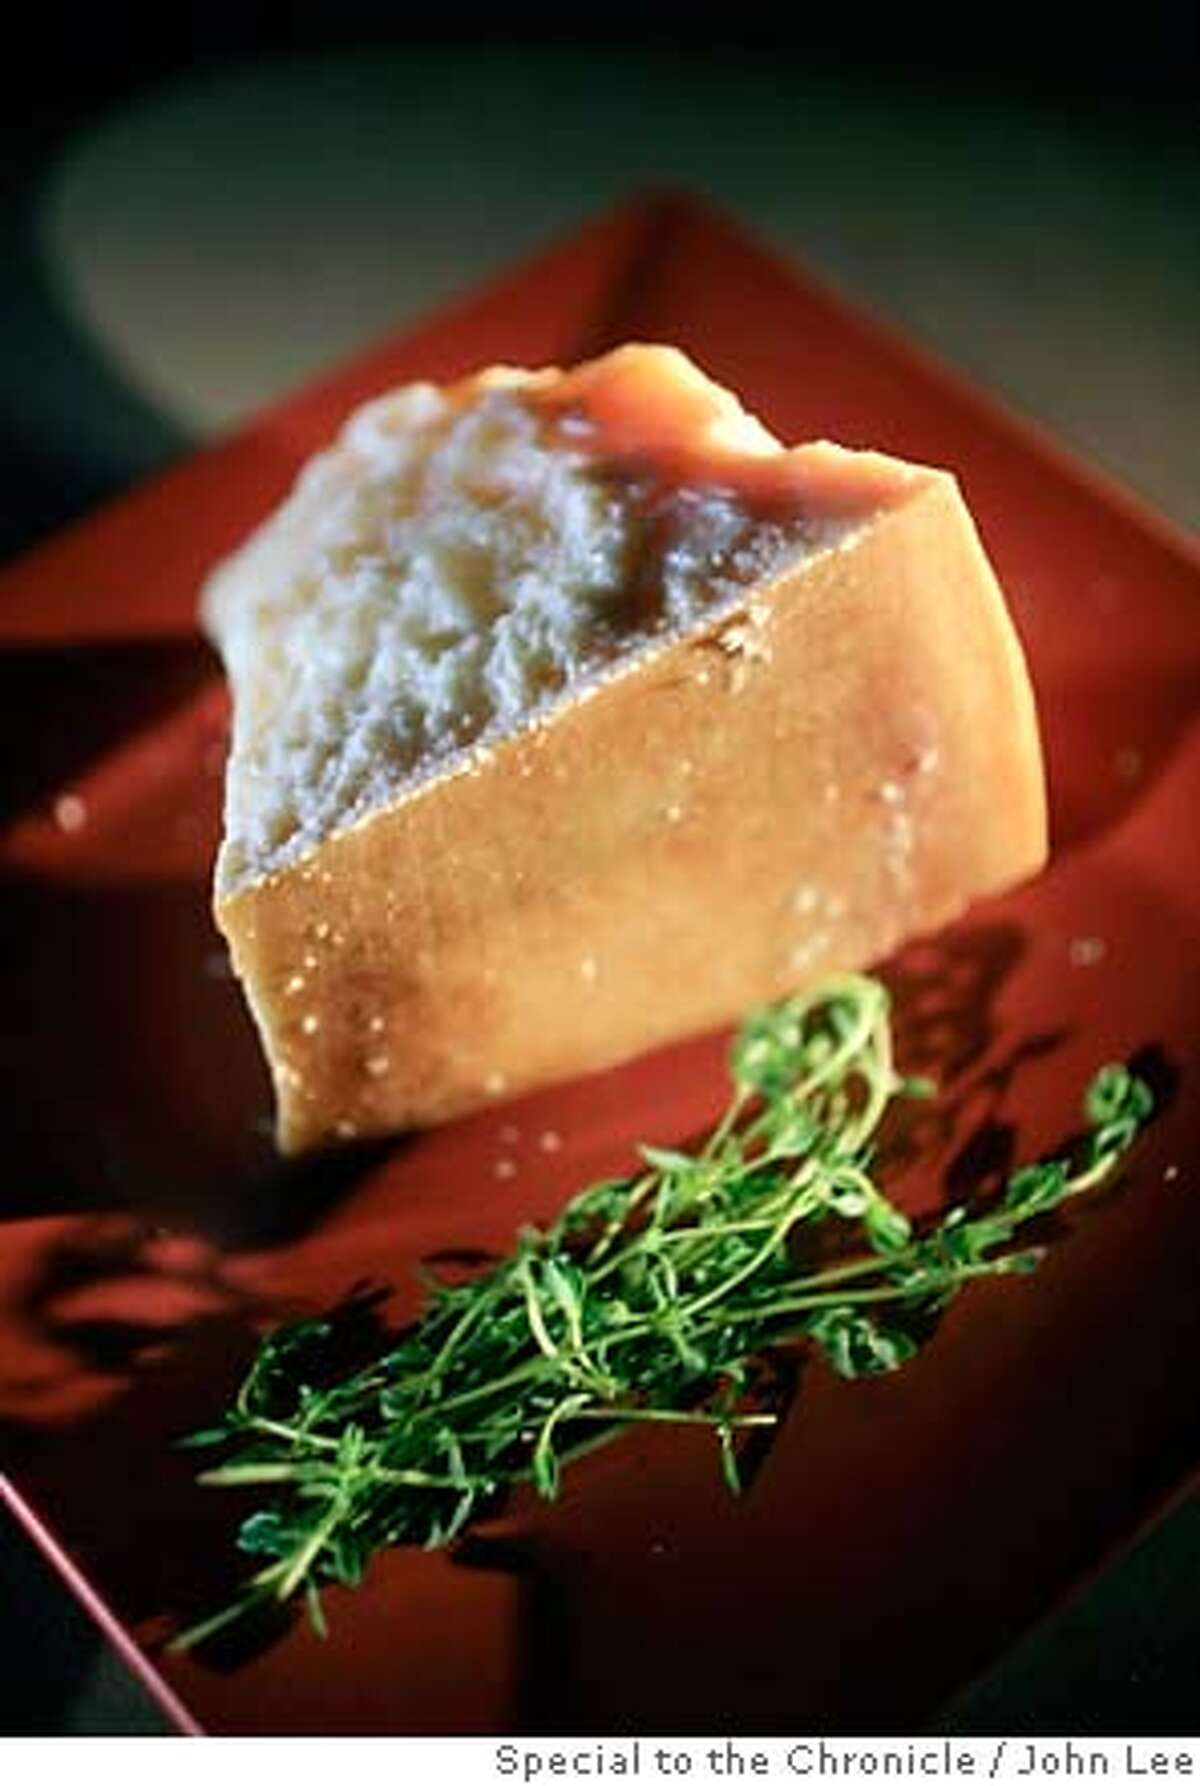 CHEESE01_02_JOHNLEE.JPG Hombre Parmigiano Reggiano. By JOHN LEE/SPECIAL TO THE CHRONICLE